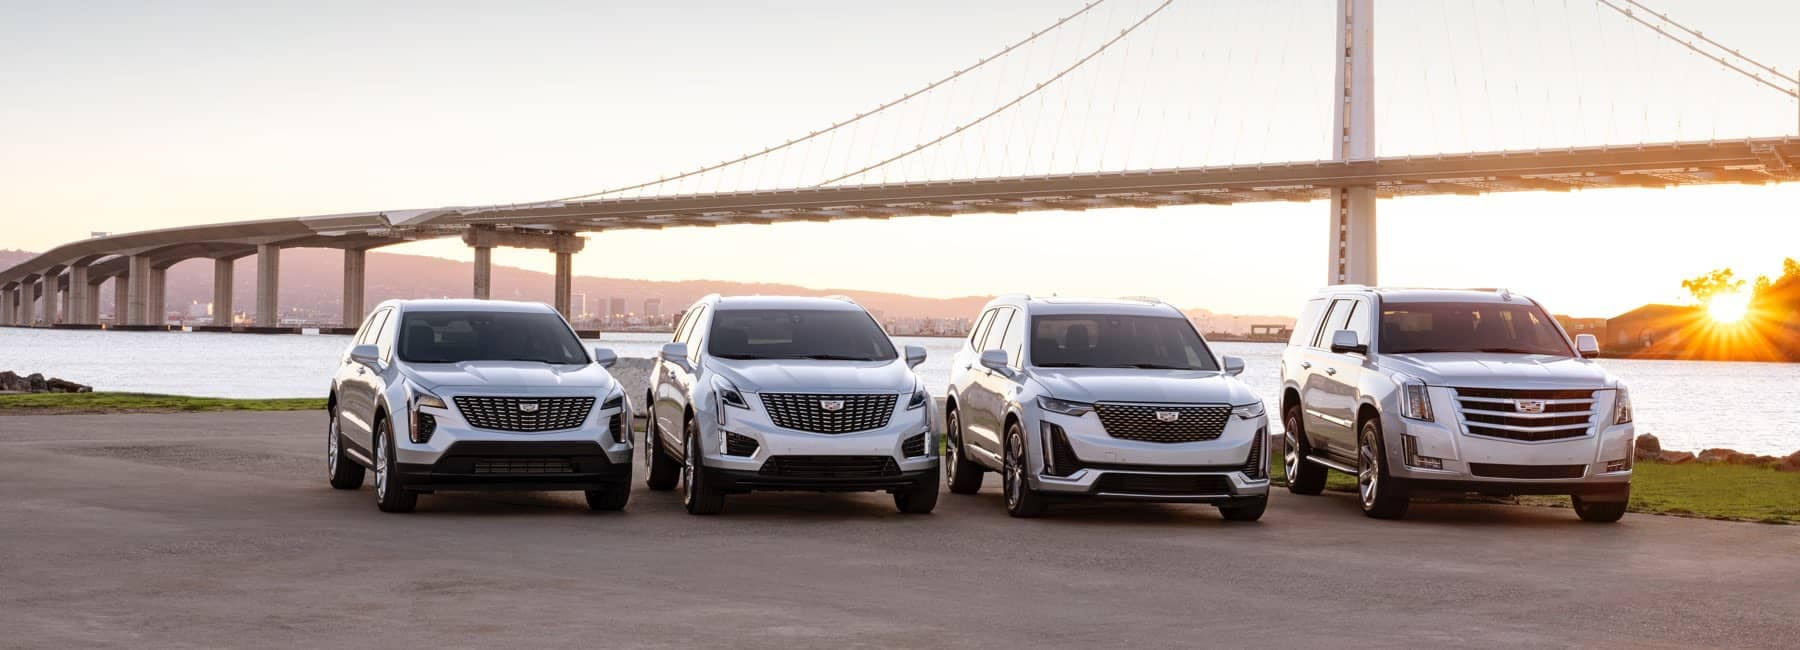 2020 Cadillac line-up in front of bridge